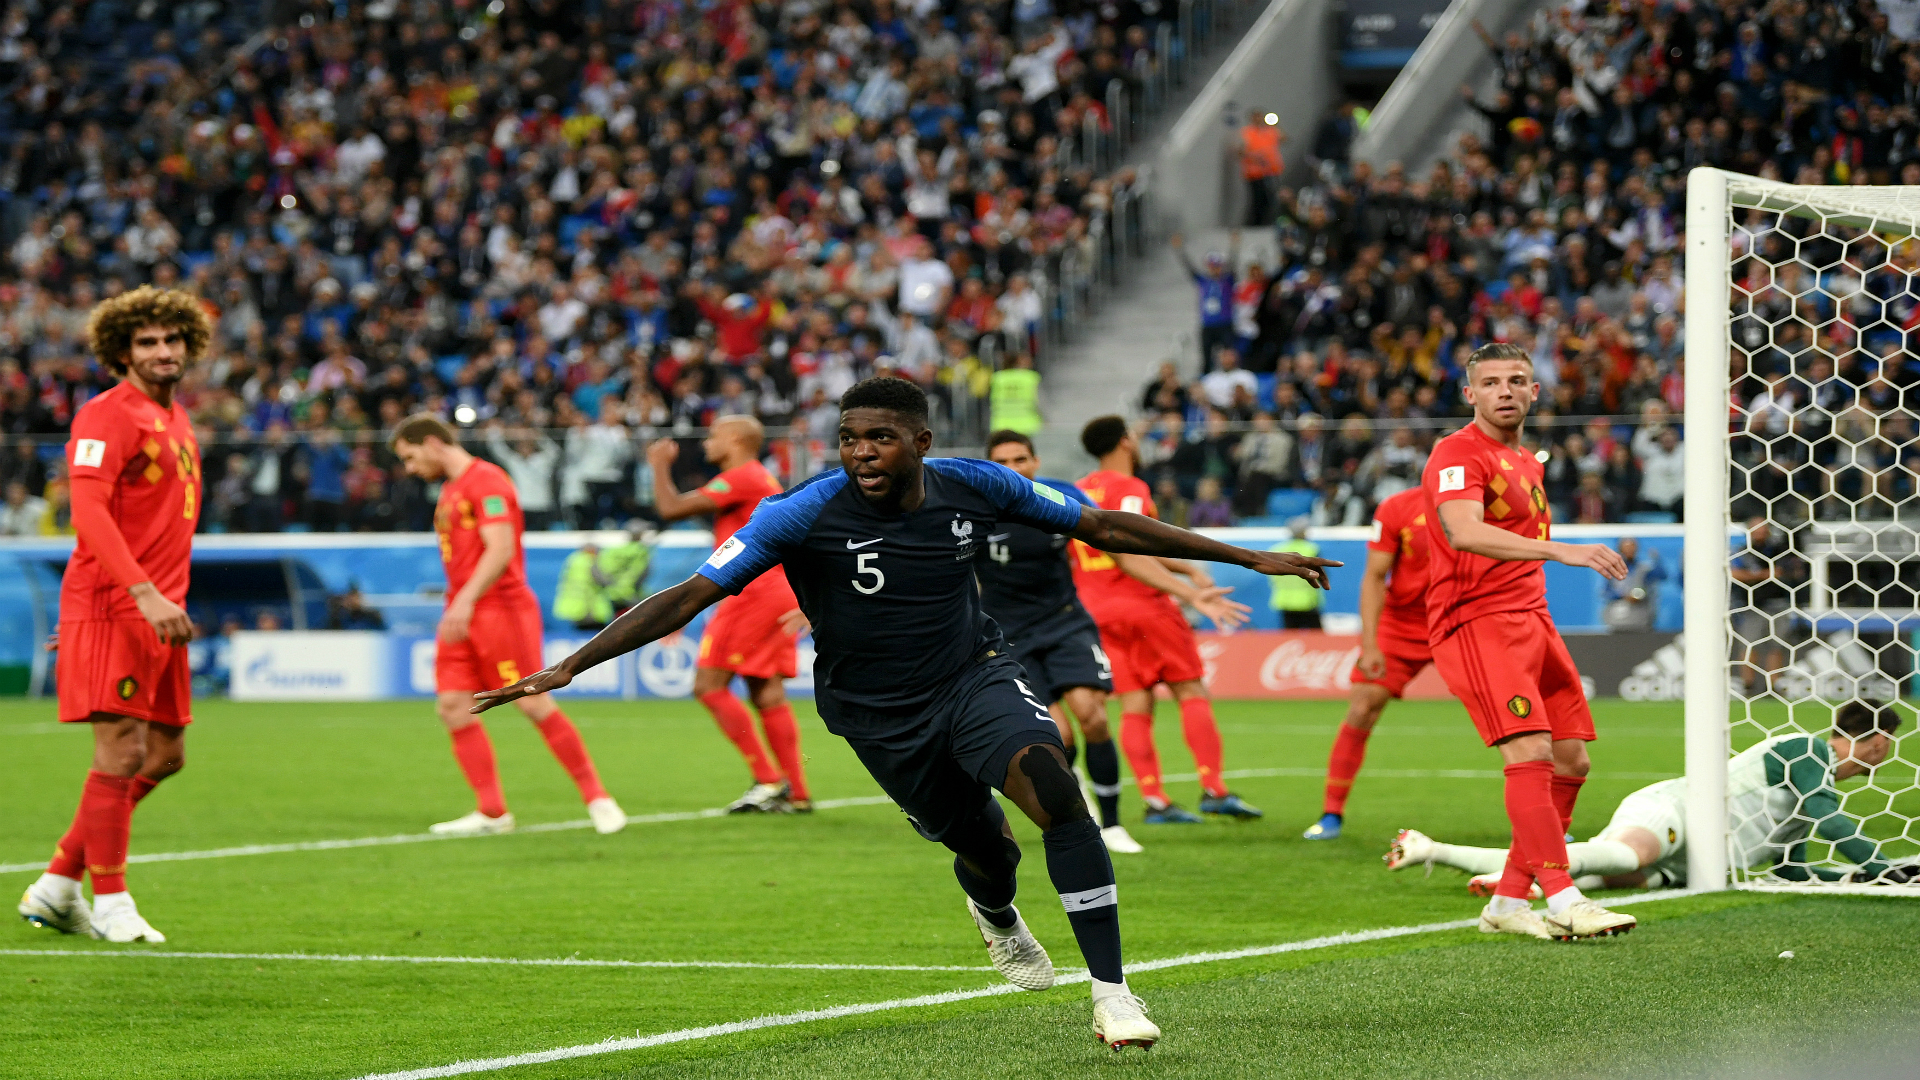 VAR penalty gives France 2-1 halftime lead over Croatia